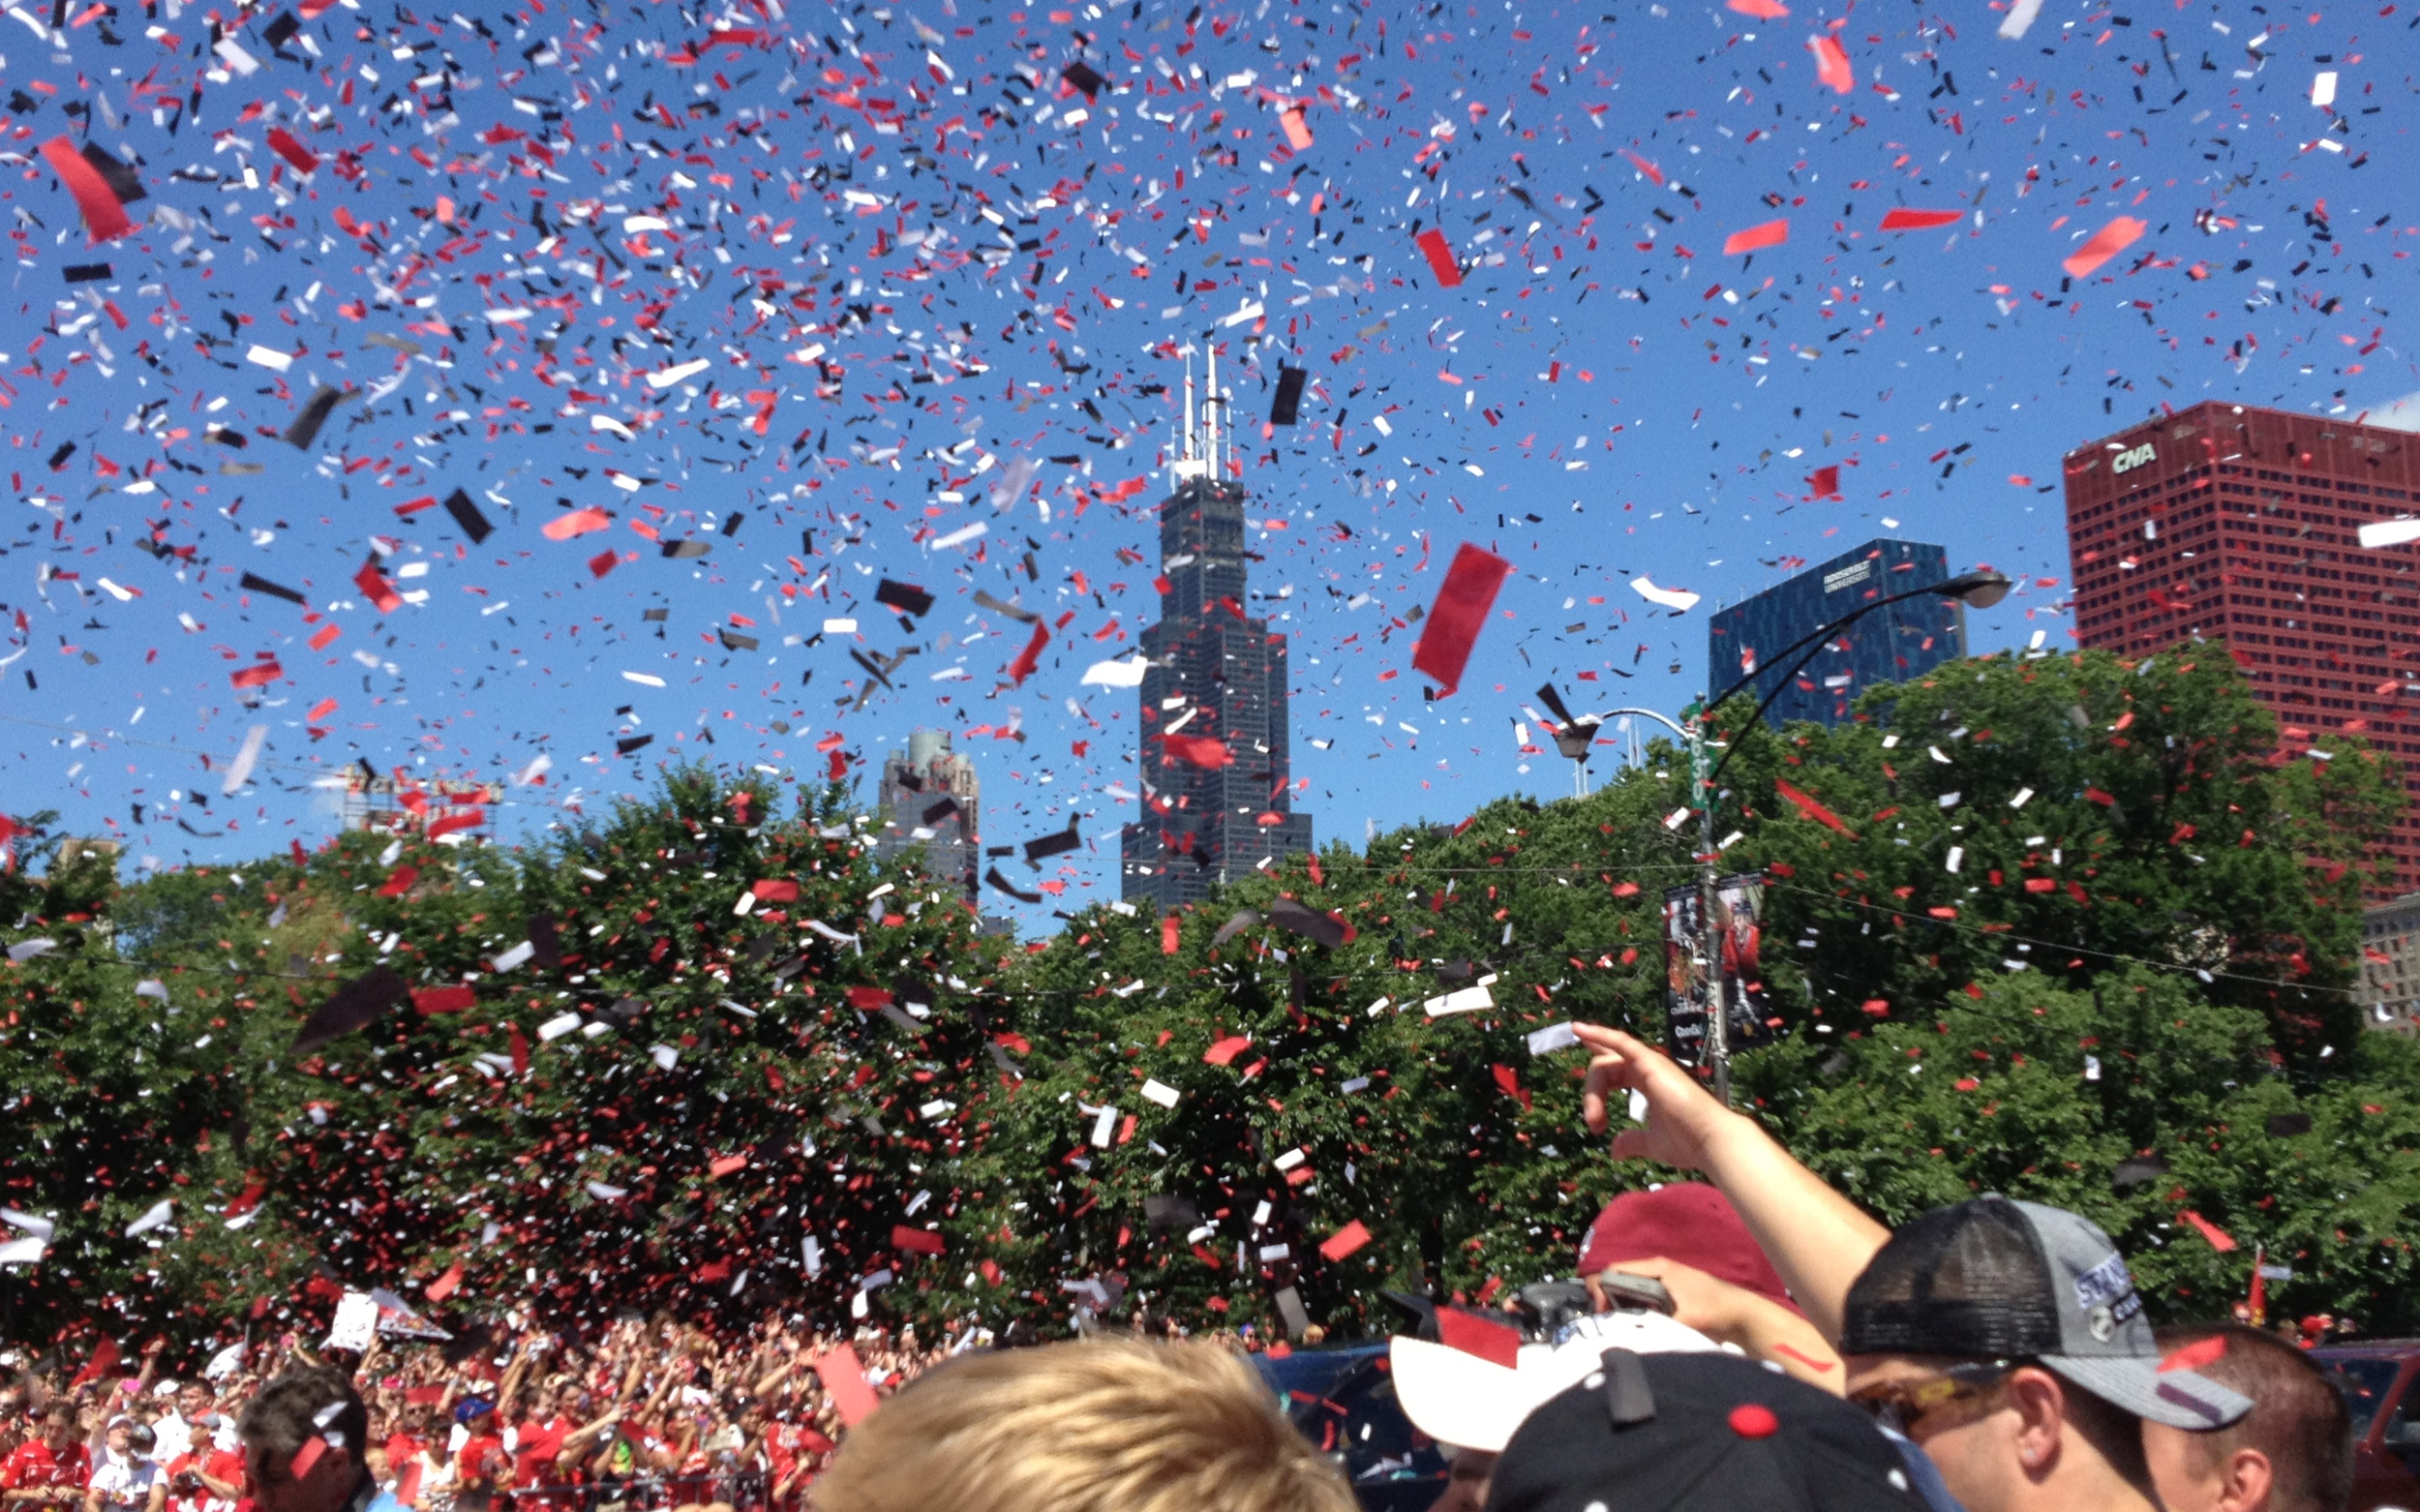 Photo from the 2013 Blackhawks Parade